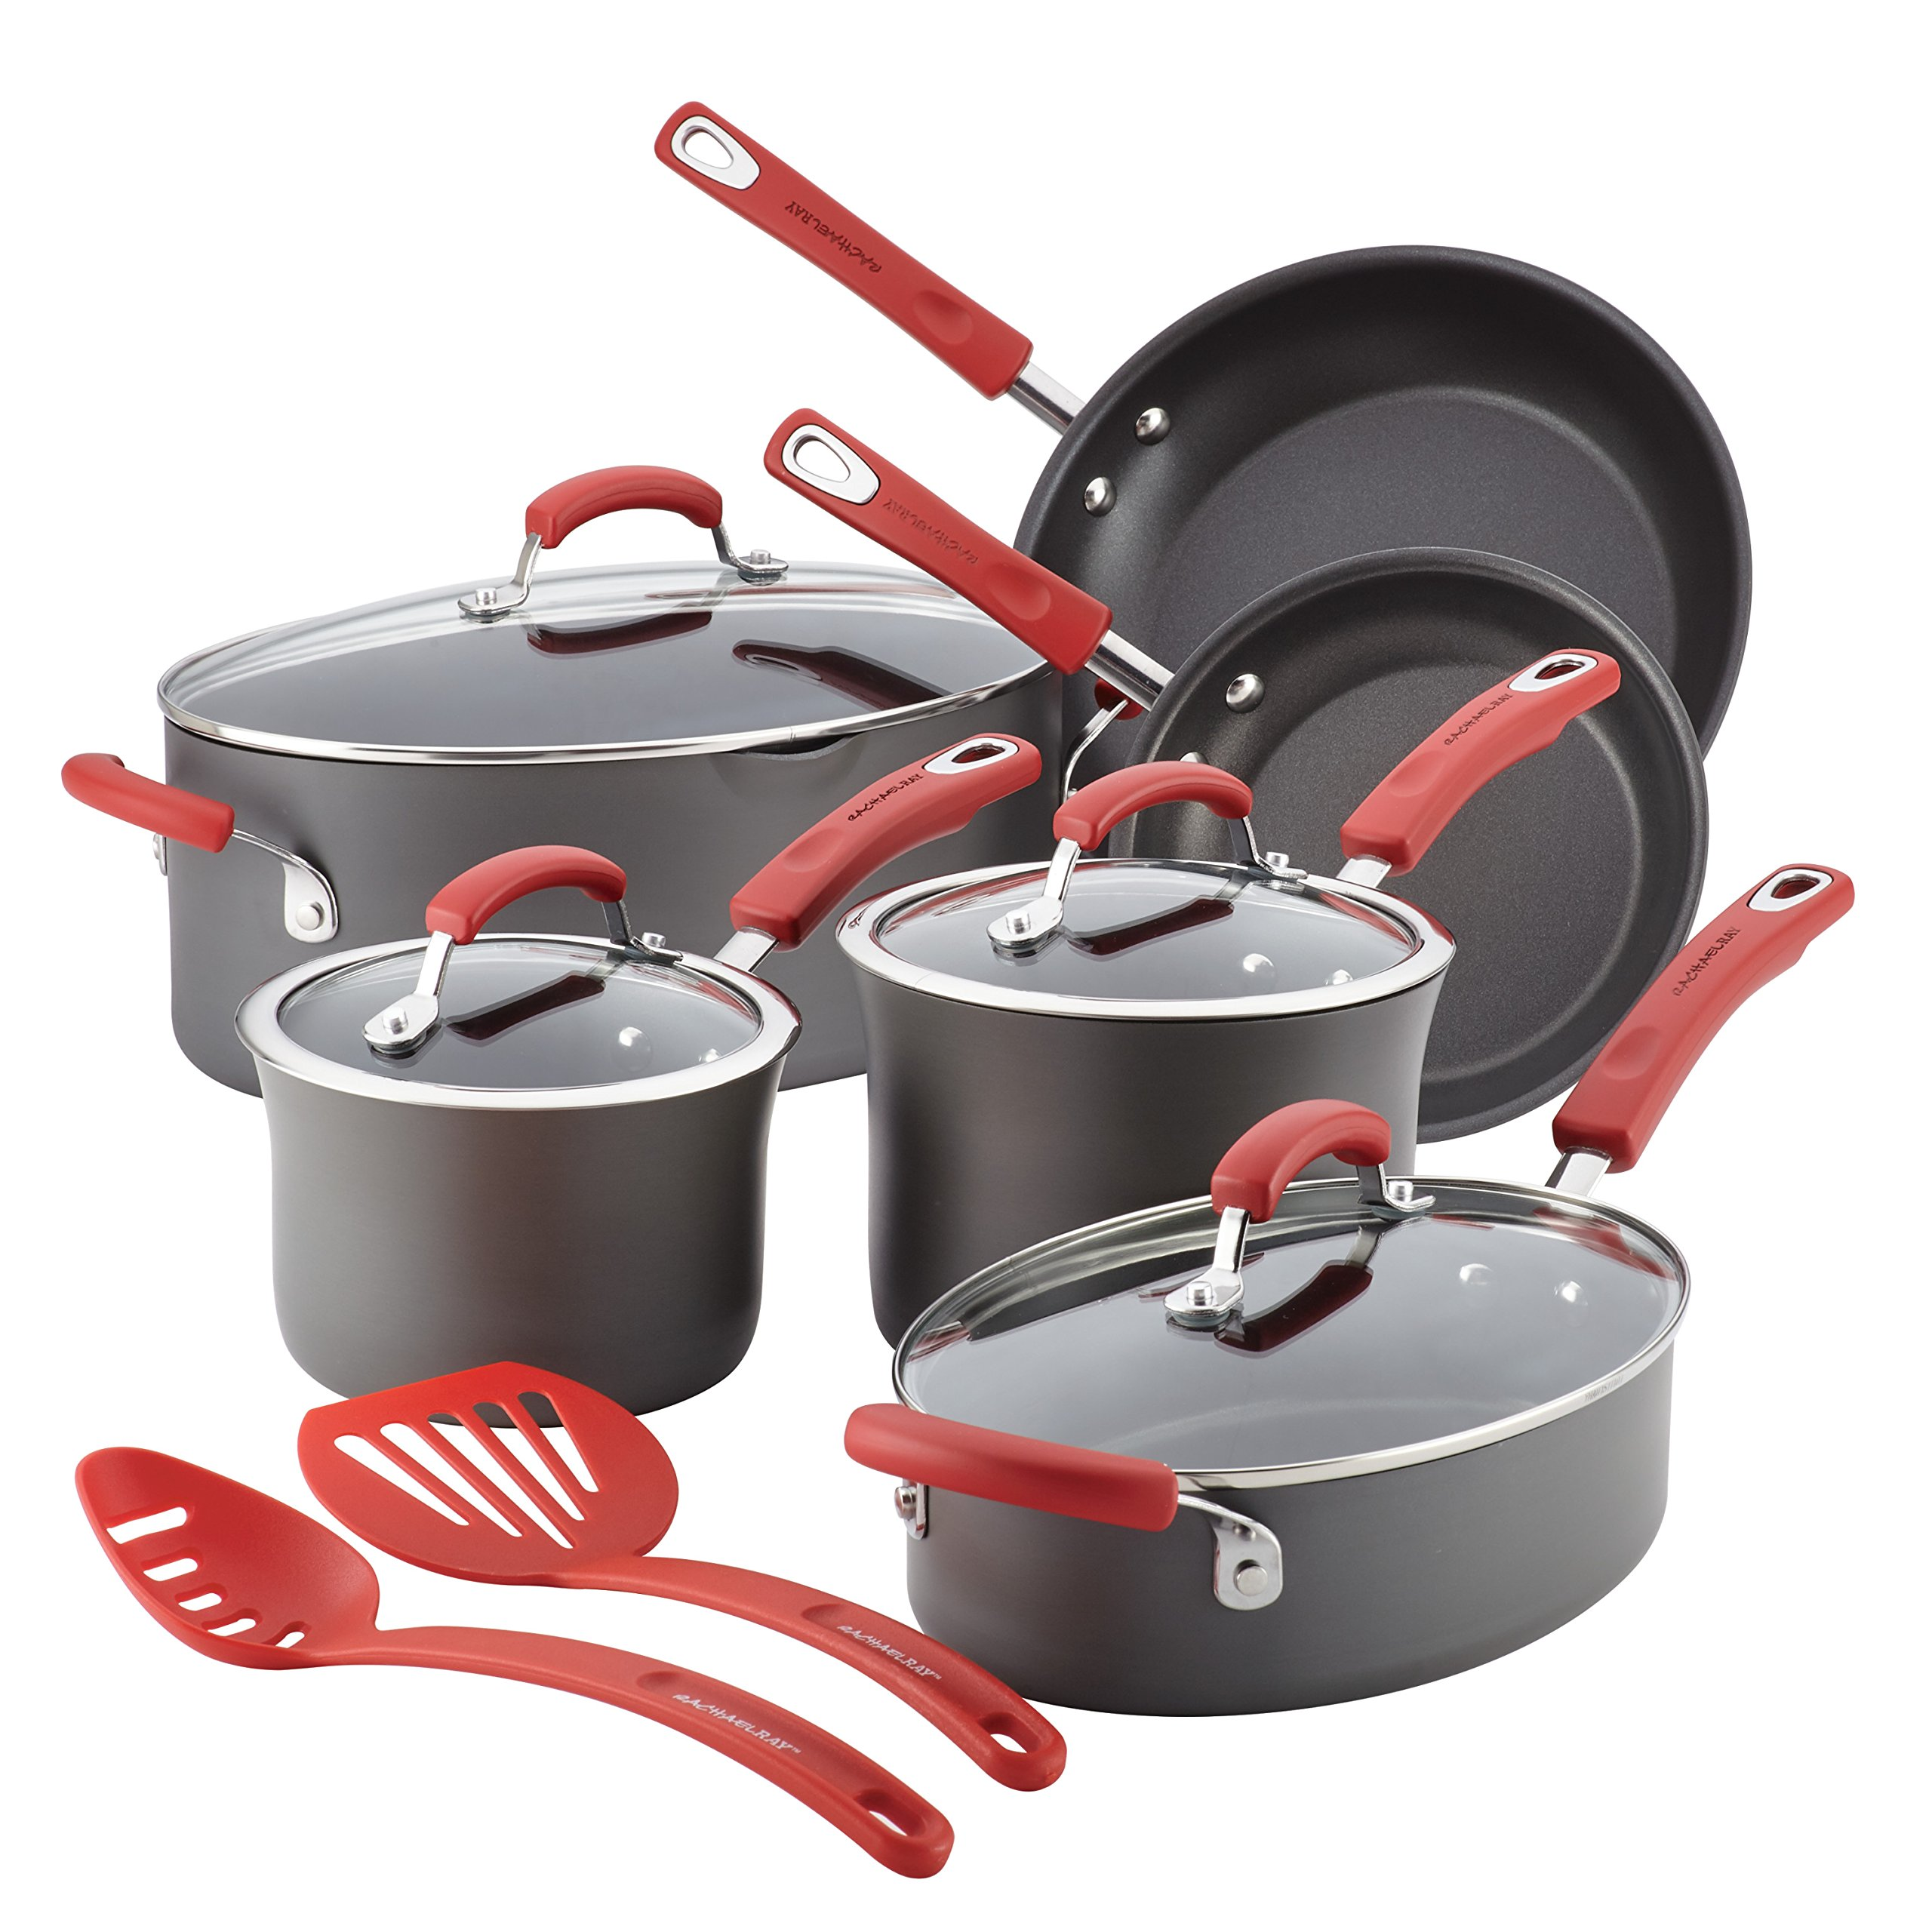 Rachael Ray Hard-Anodized Nonstick 12-Piece Cookware Set, Gray with Red Handles by Rachael Ray